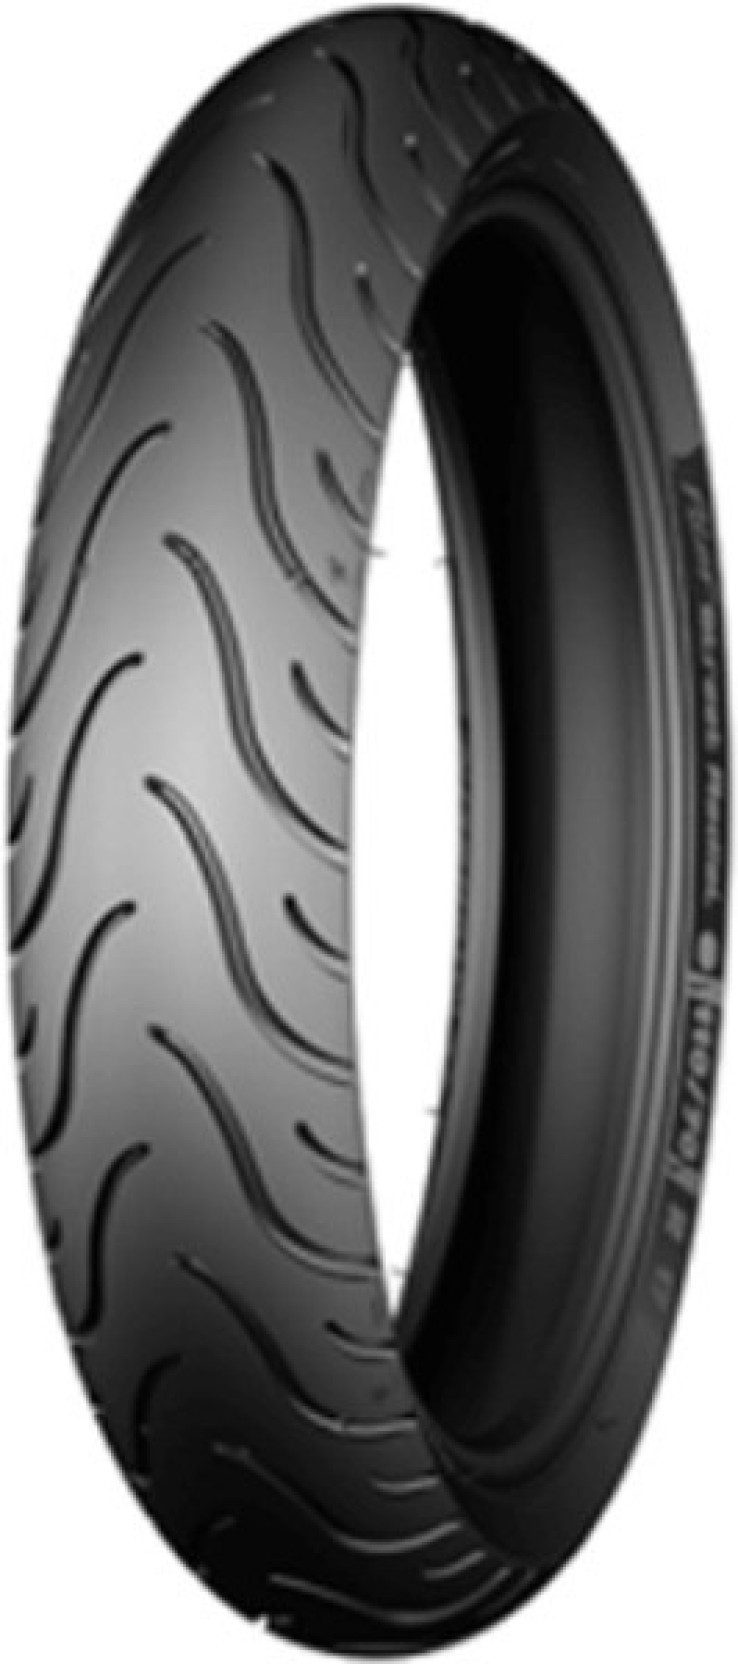 Michelin Pilot Street Radial 110 70 R 17 Front Tyre Price In India Tubeless Home